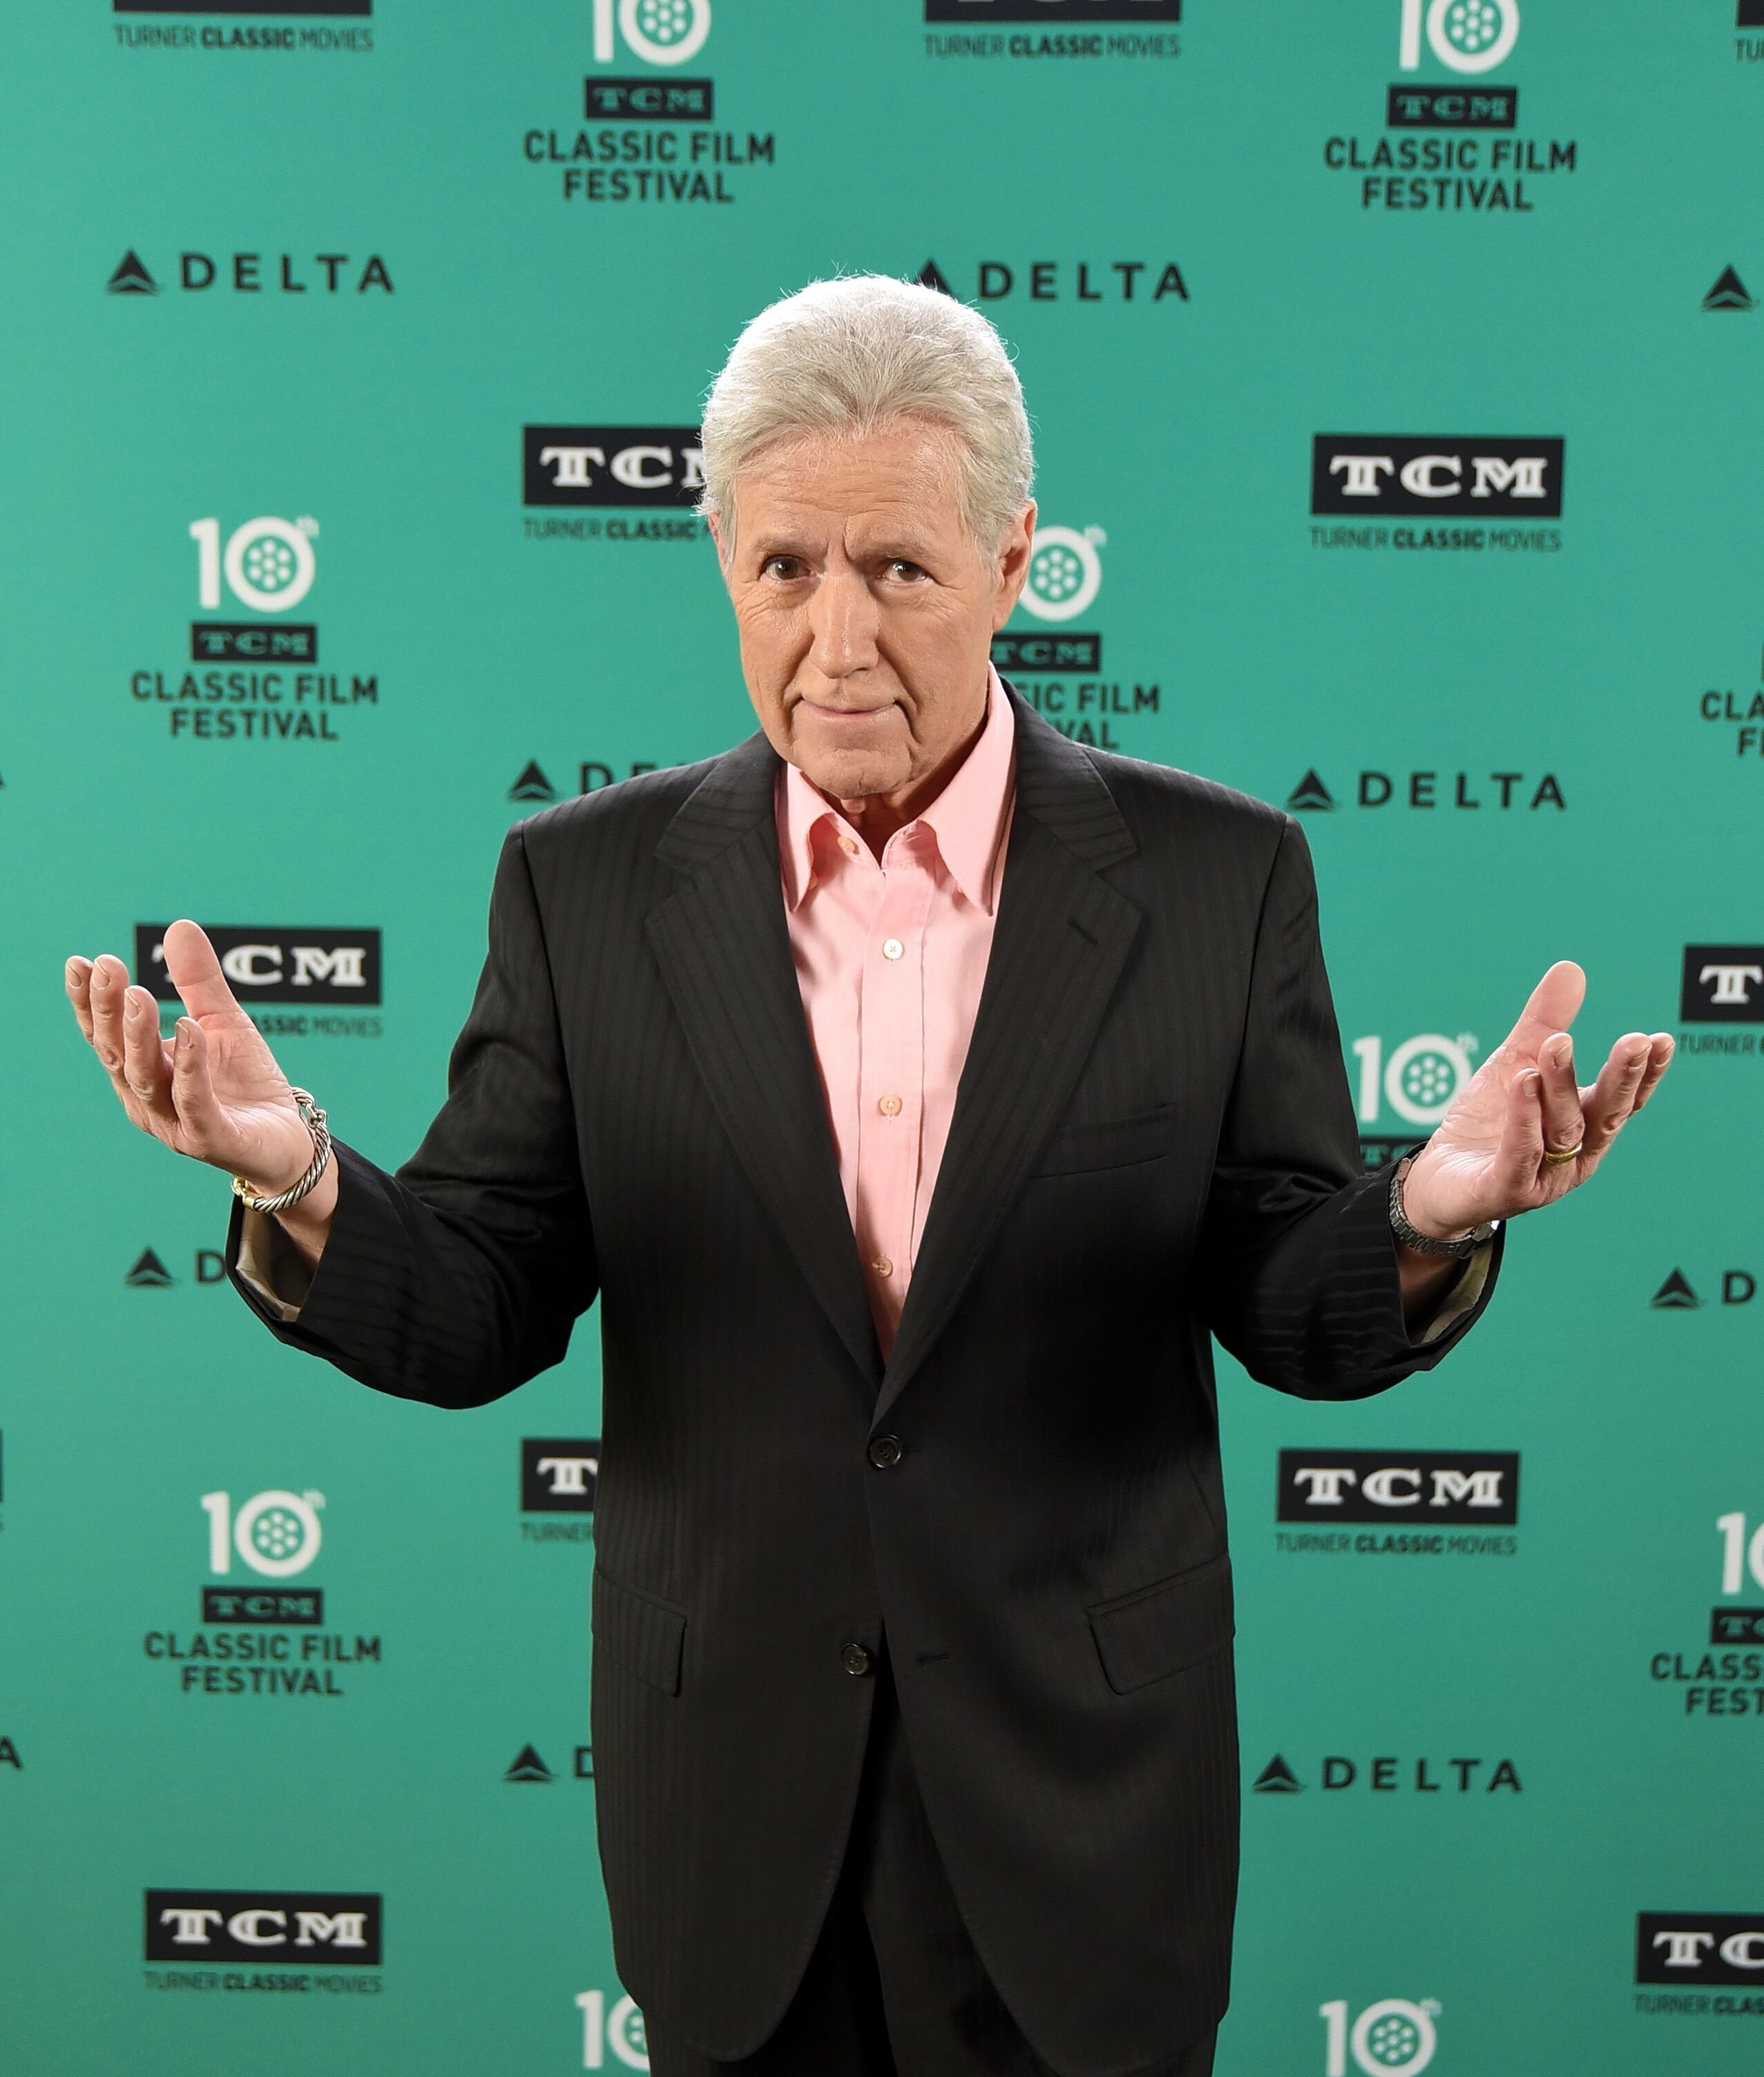 Alex Trebek at TCM's 10th annual classic film festival in Hollywood, California in 2019 | Photo: Getty Images